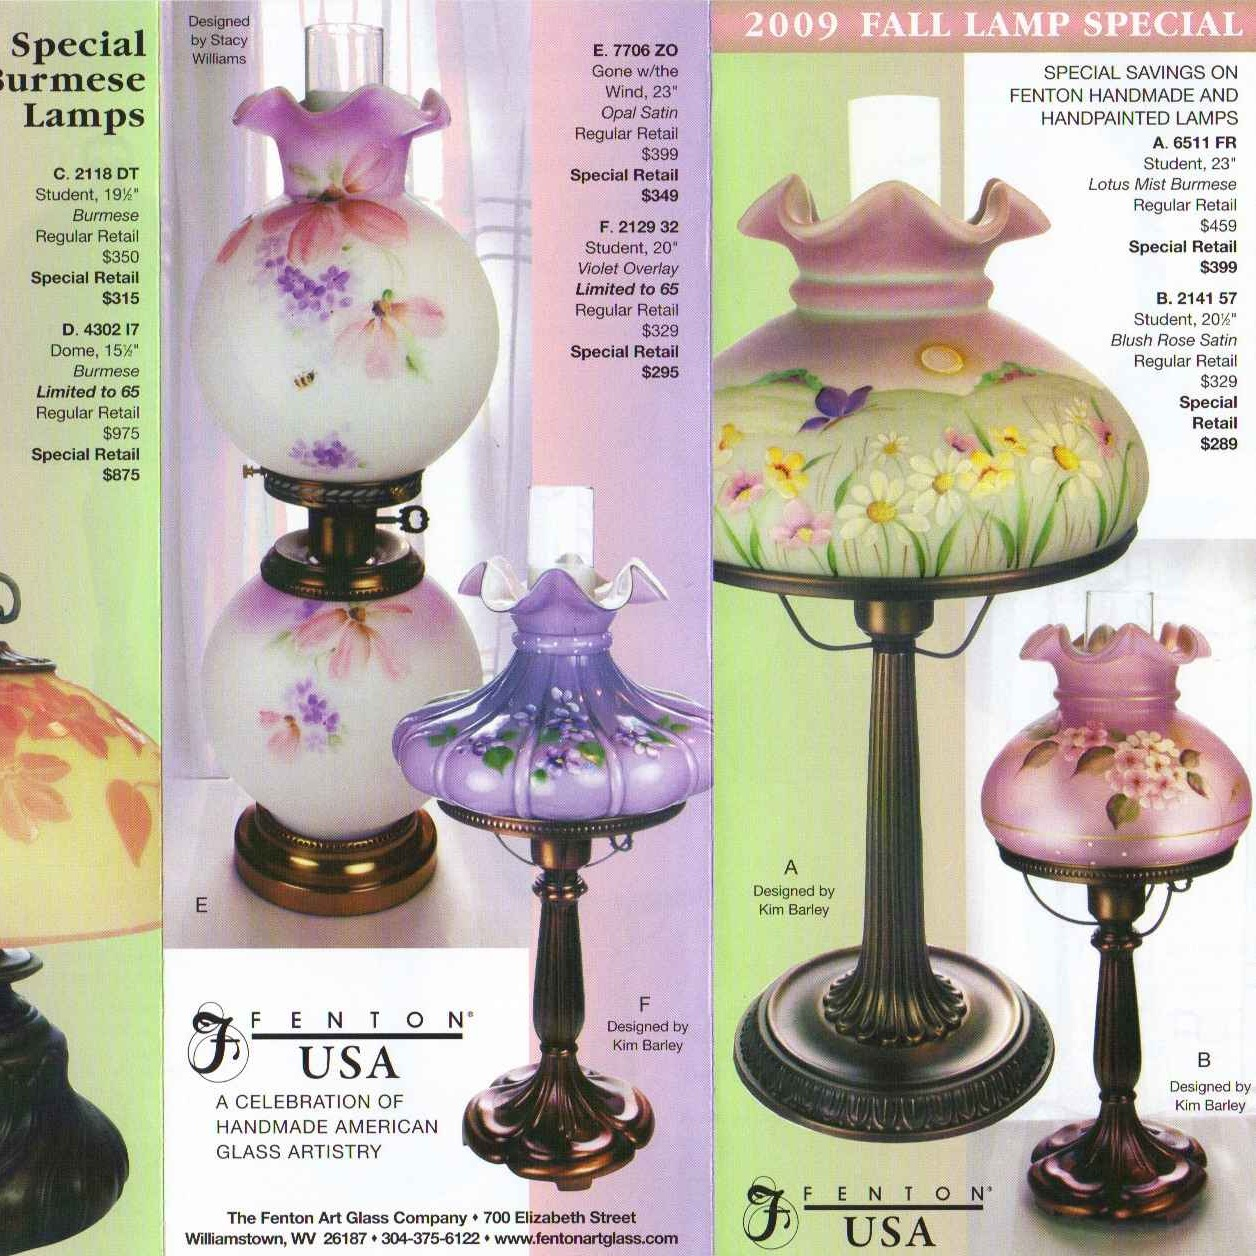 2009 Fall Lamp Special